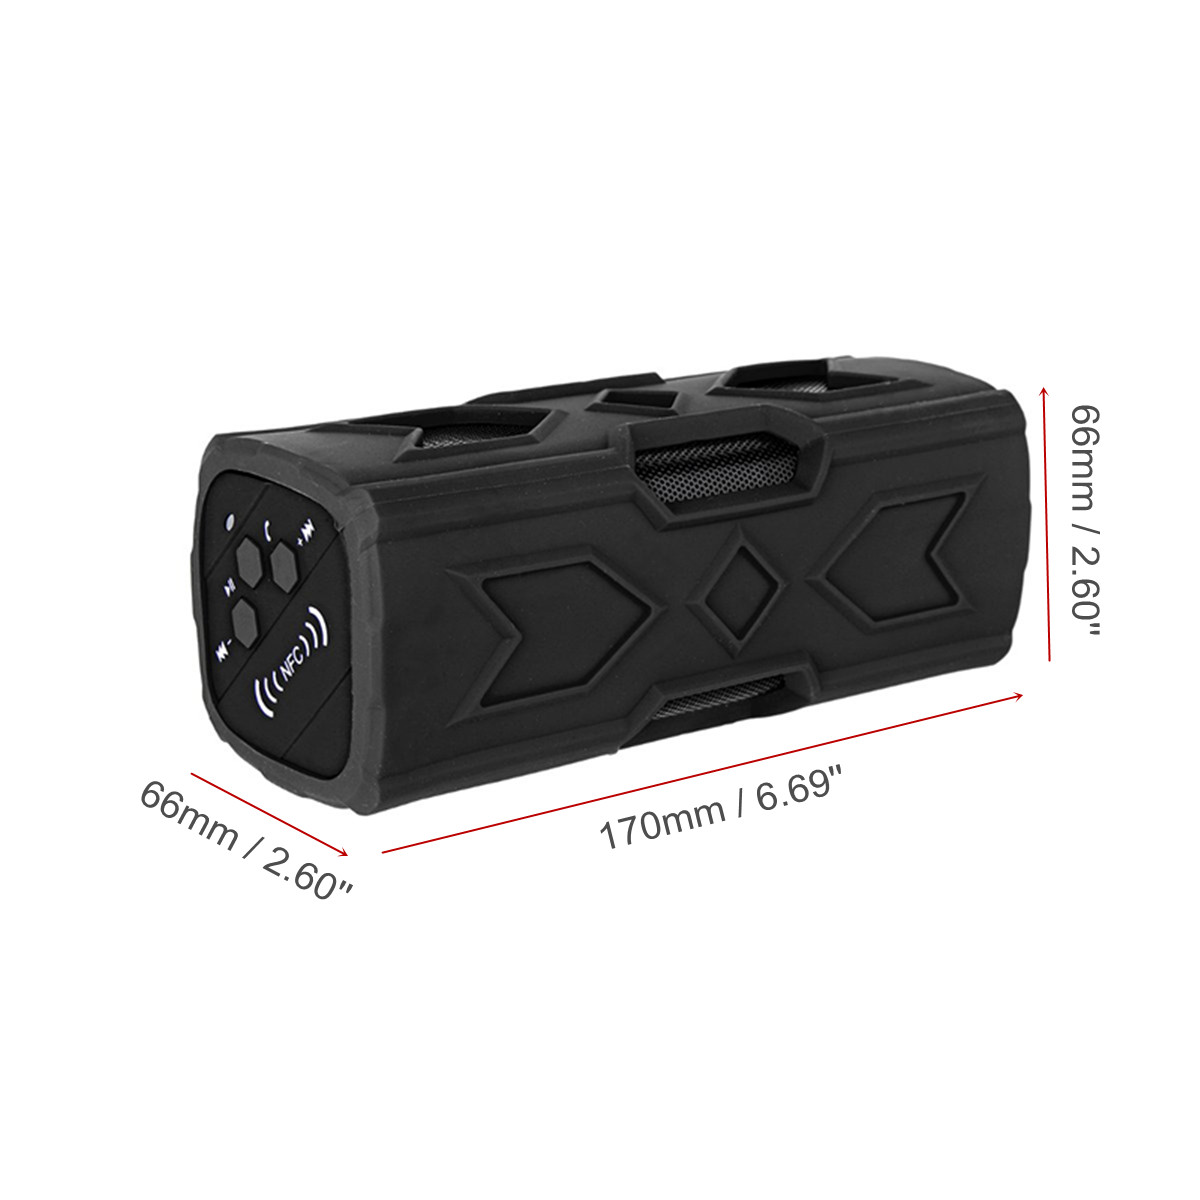 Portable bluetooth 4.0 Wireless Speaker Waterproof USB Power Bank Bass NFC AUX Subwoofer